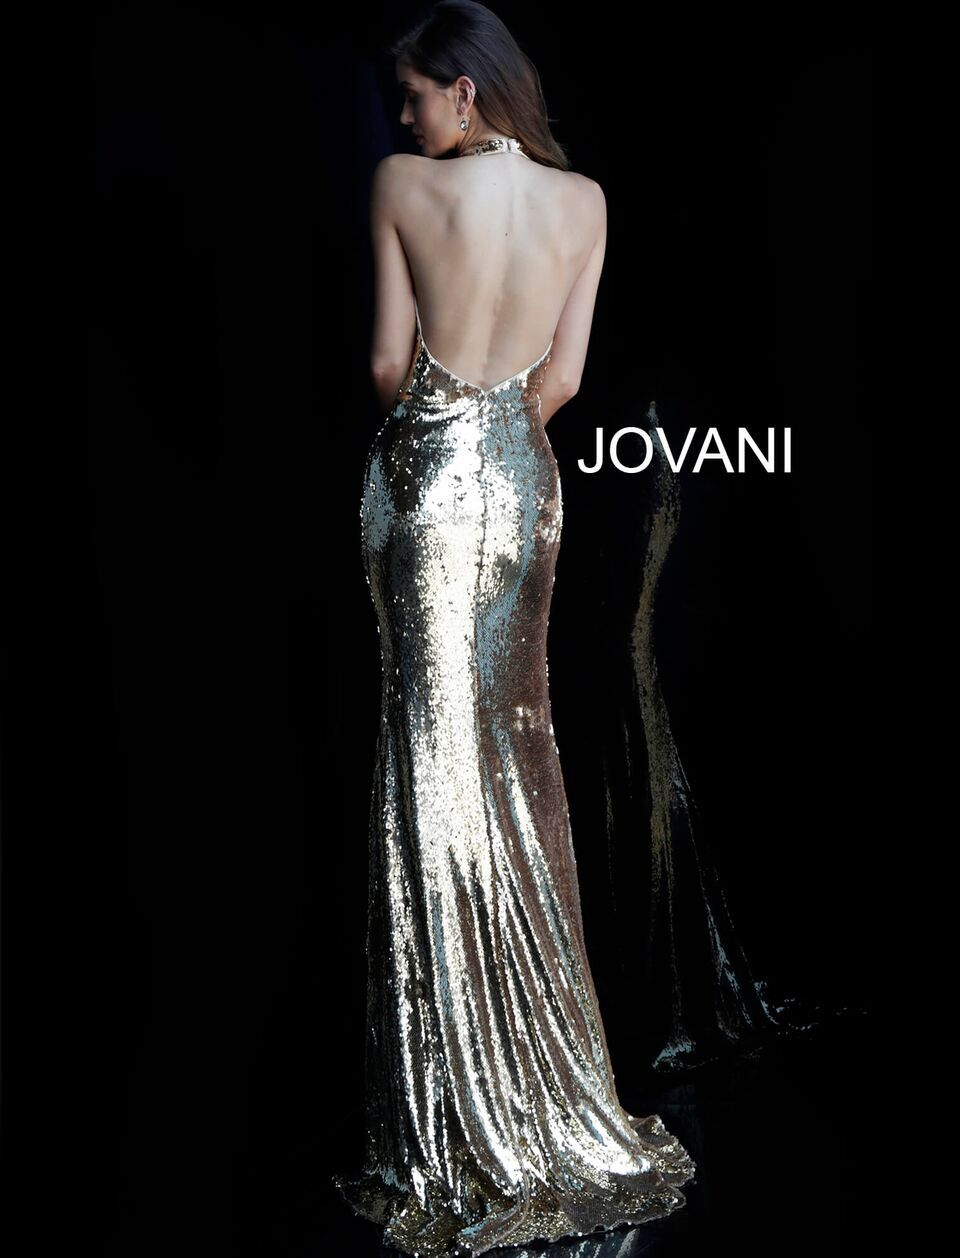 Jovani Gold Halter Neck Backless Sequin Gown